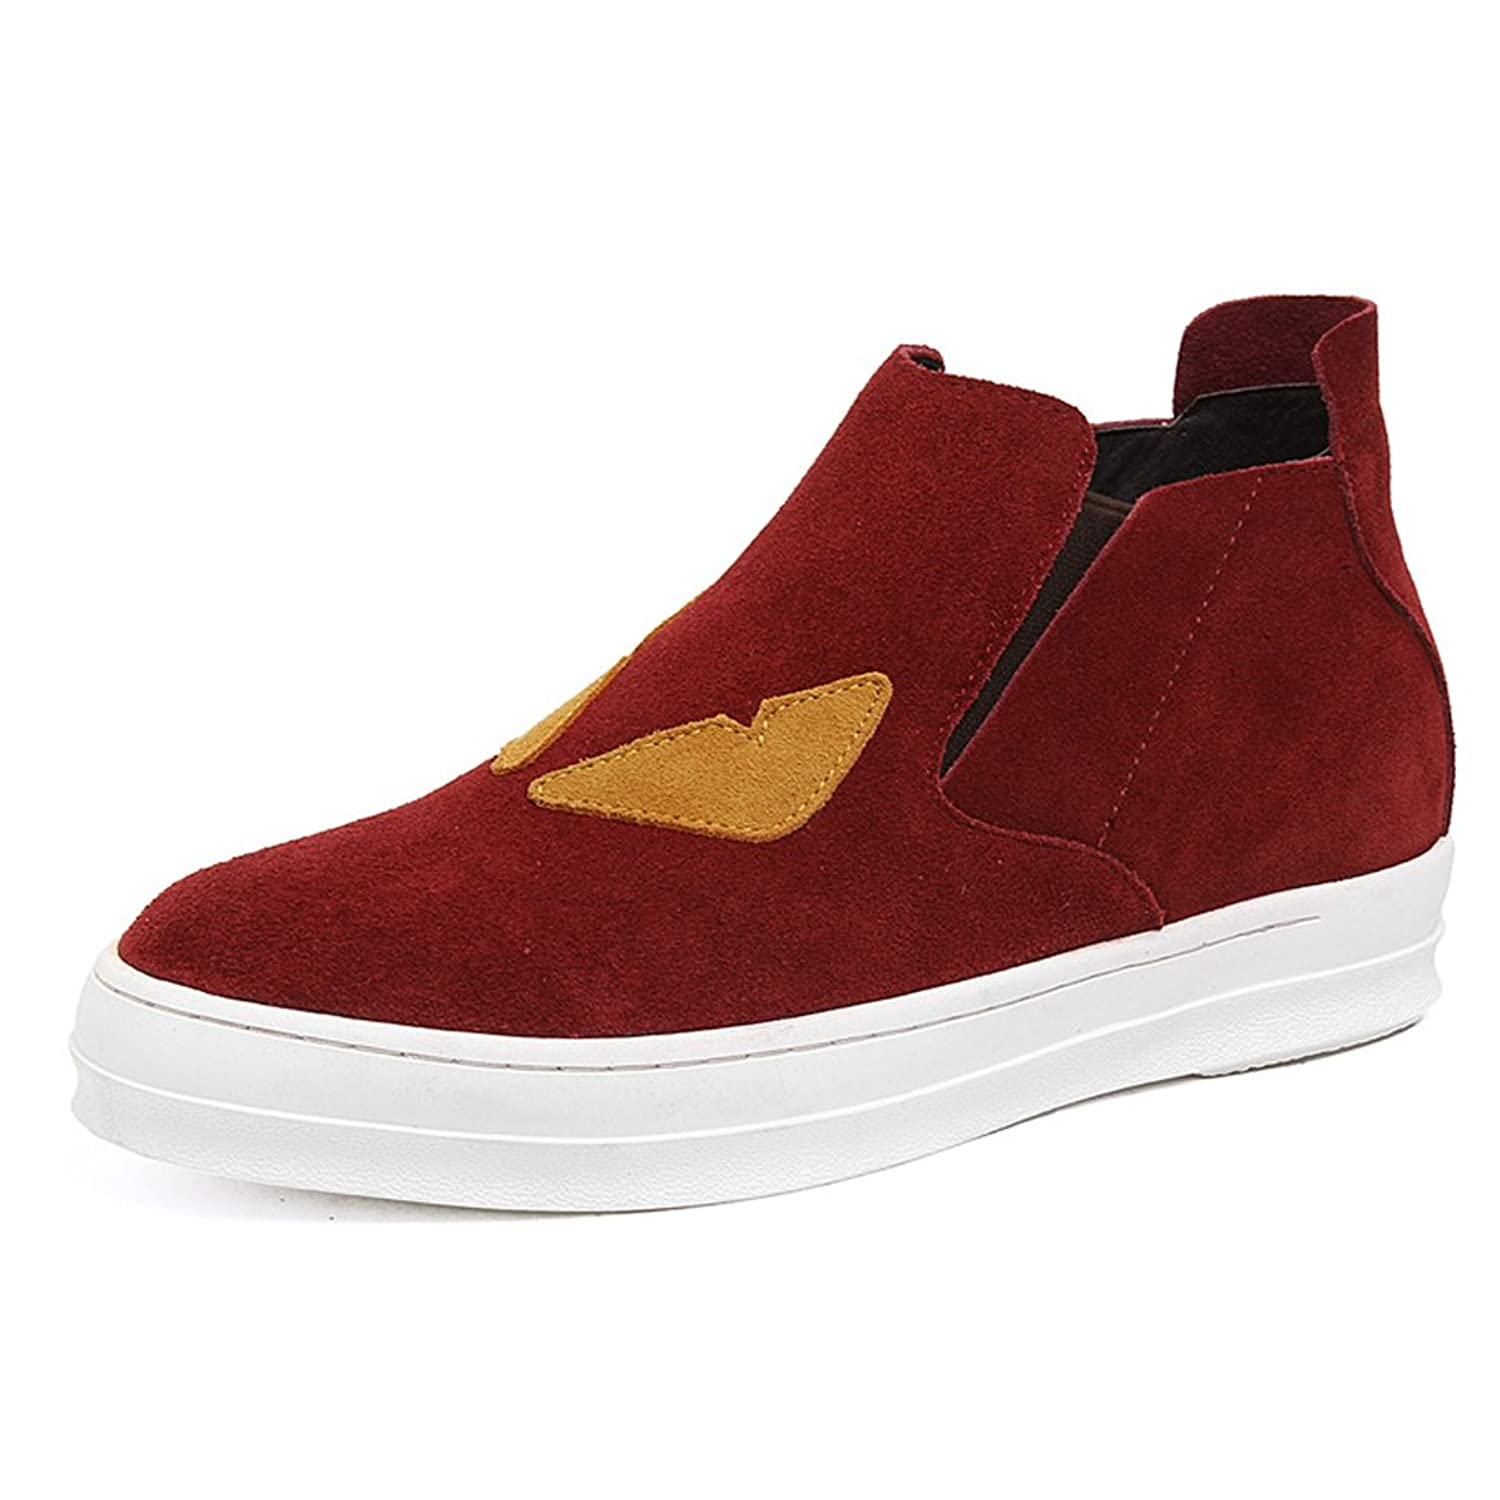 2.36 Inches Taller-Men's Height Increasing Elevator Suede Leather Fashion Boots Slip On